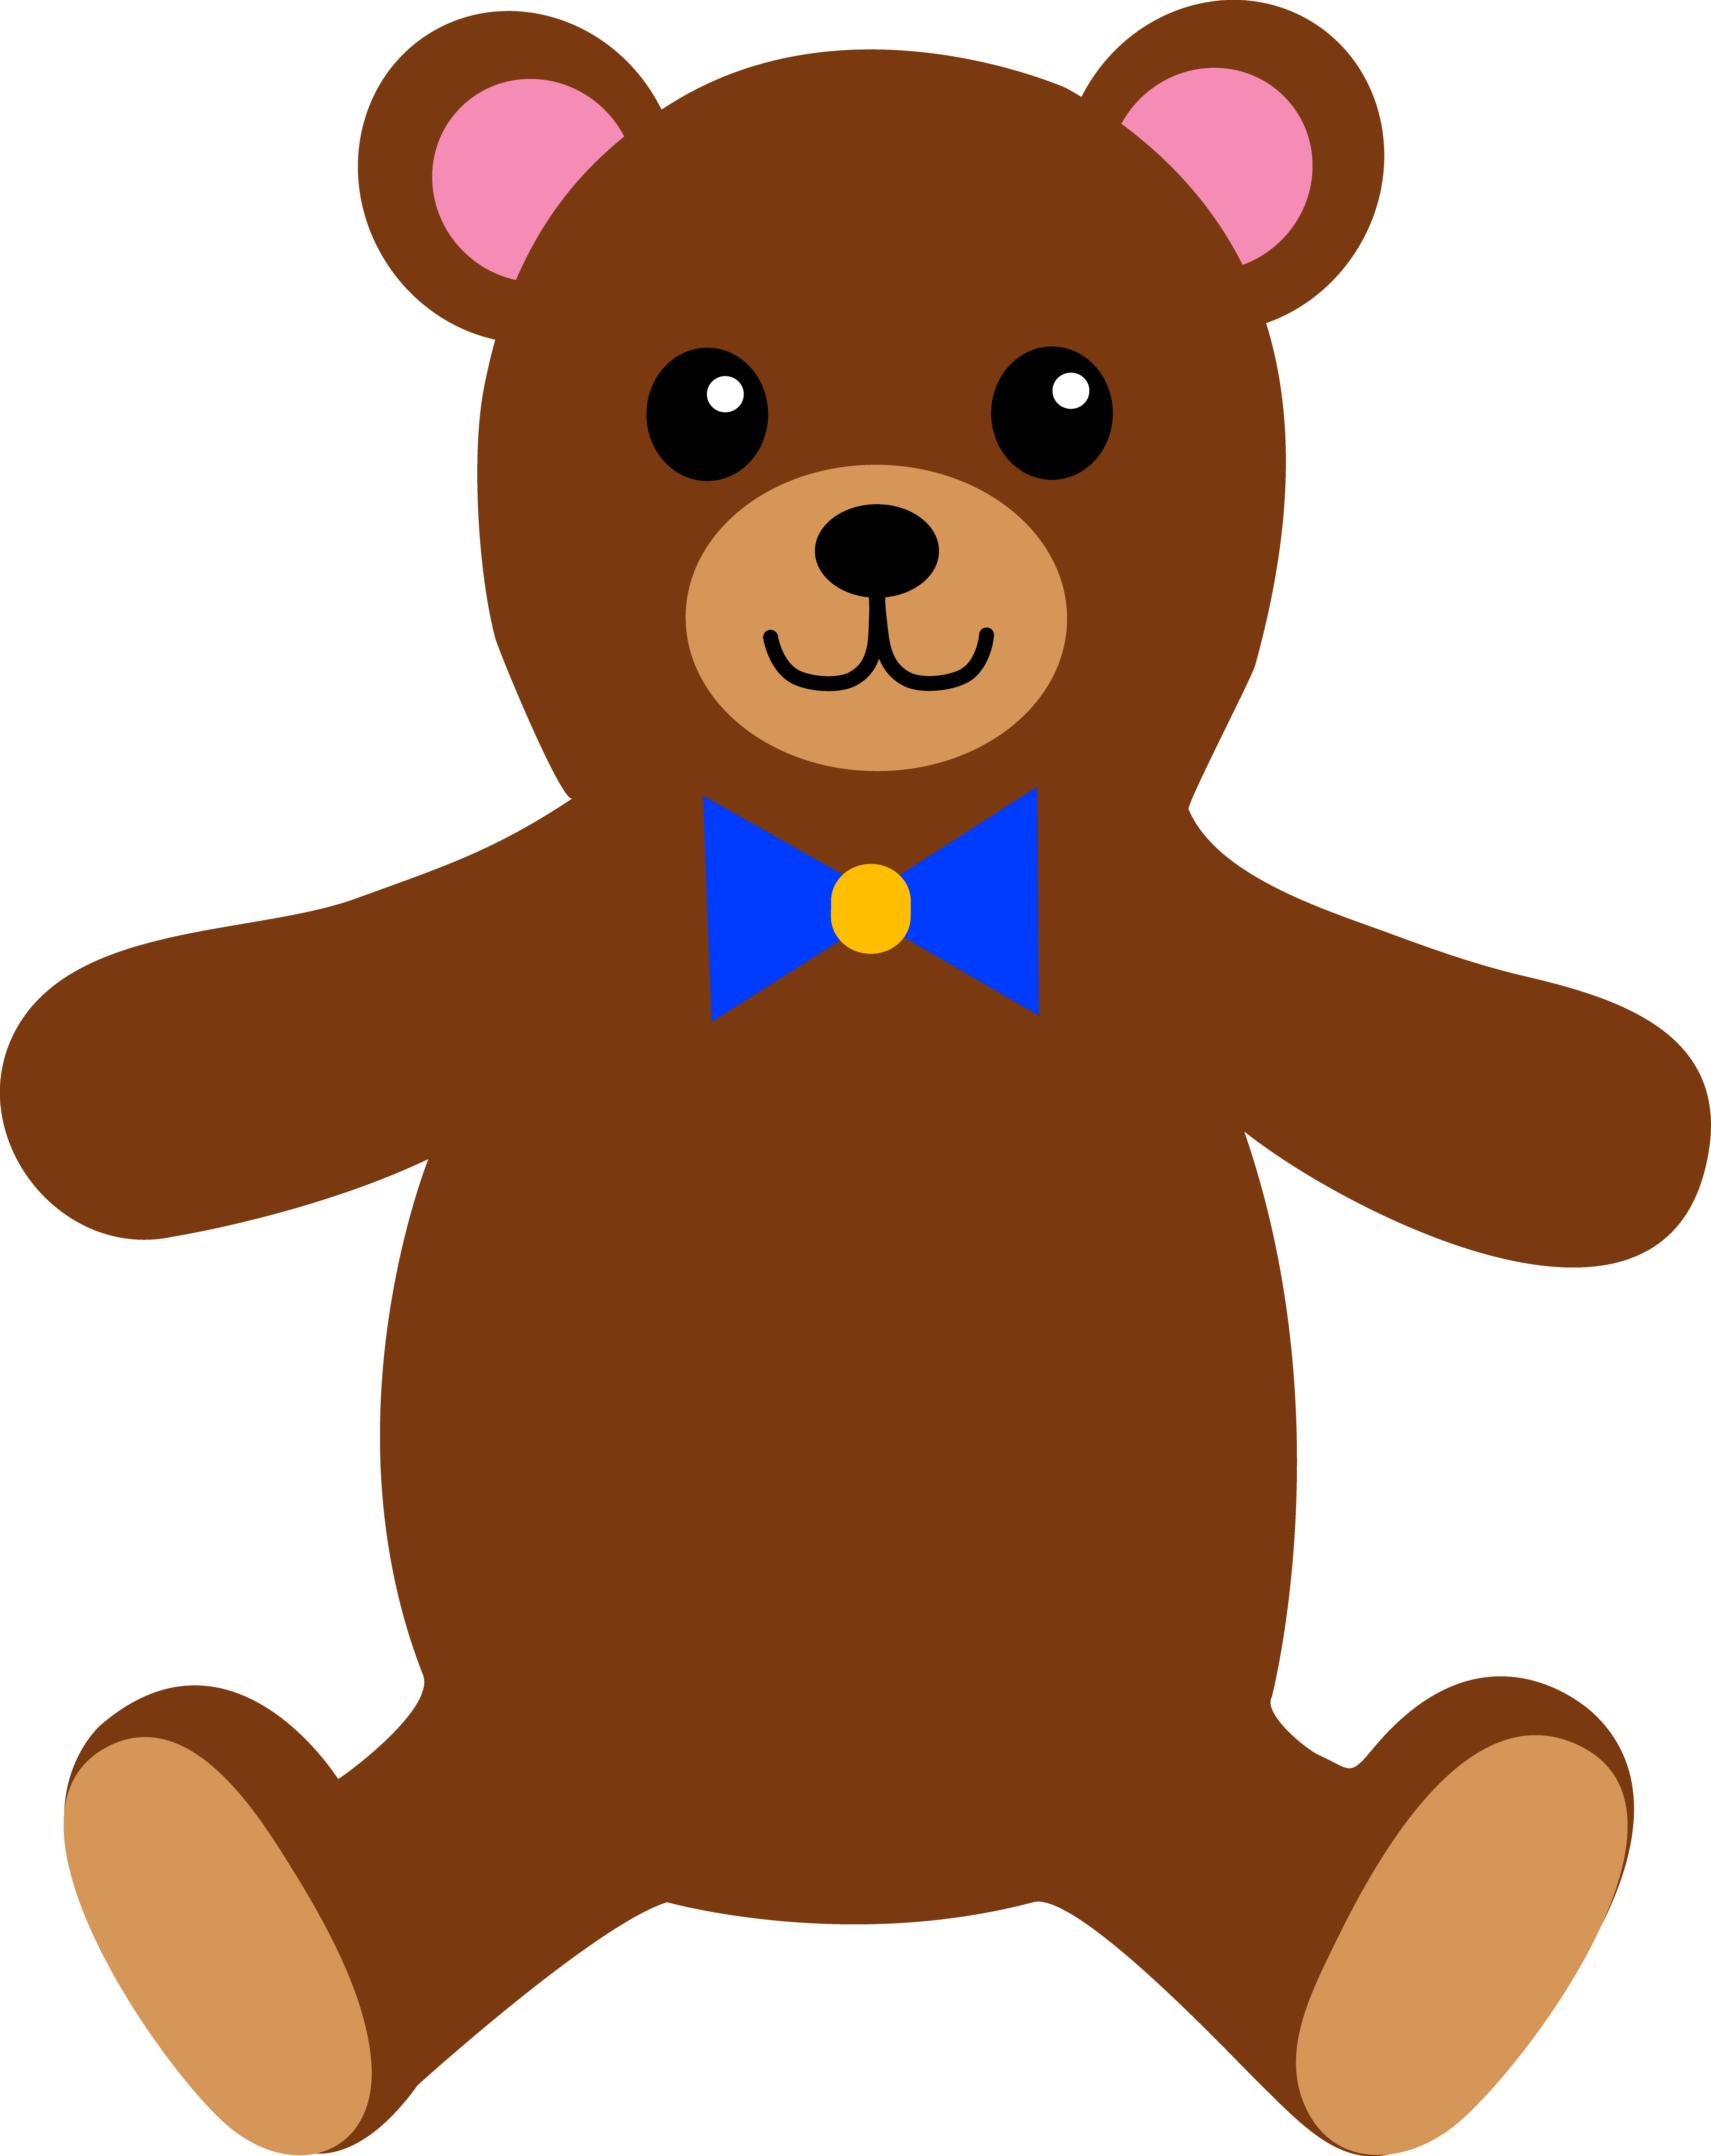 Teddy Bear Drawing For Kids at GetDrawings | Free download